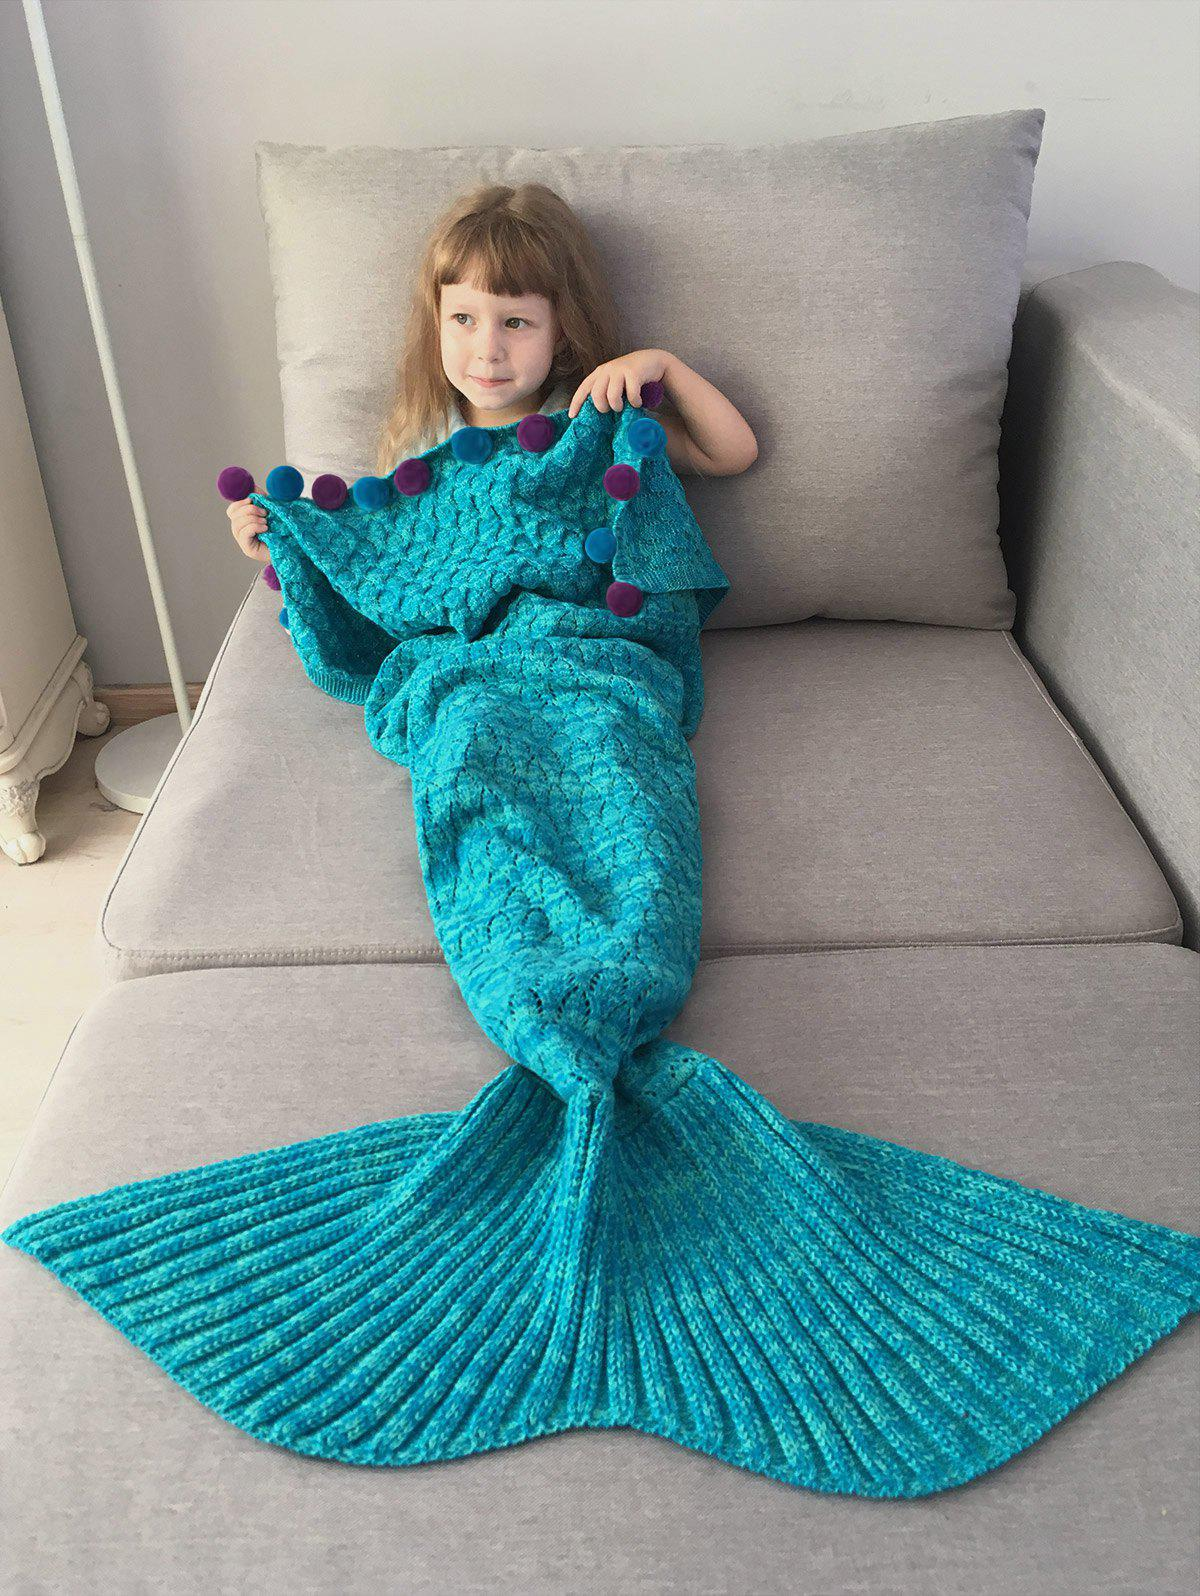 Pom Ball Crochet Knit Mermaid Blanket Throw For Kids - LAKE BLUE